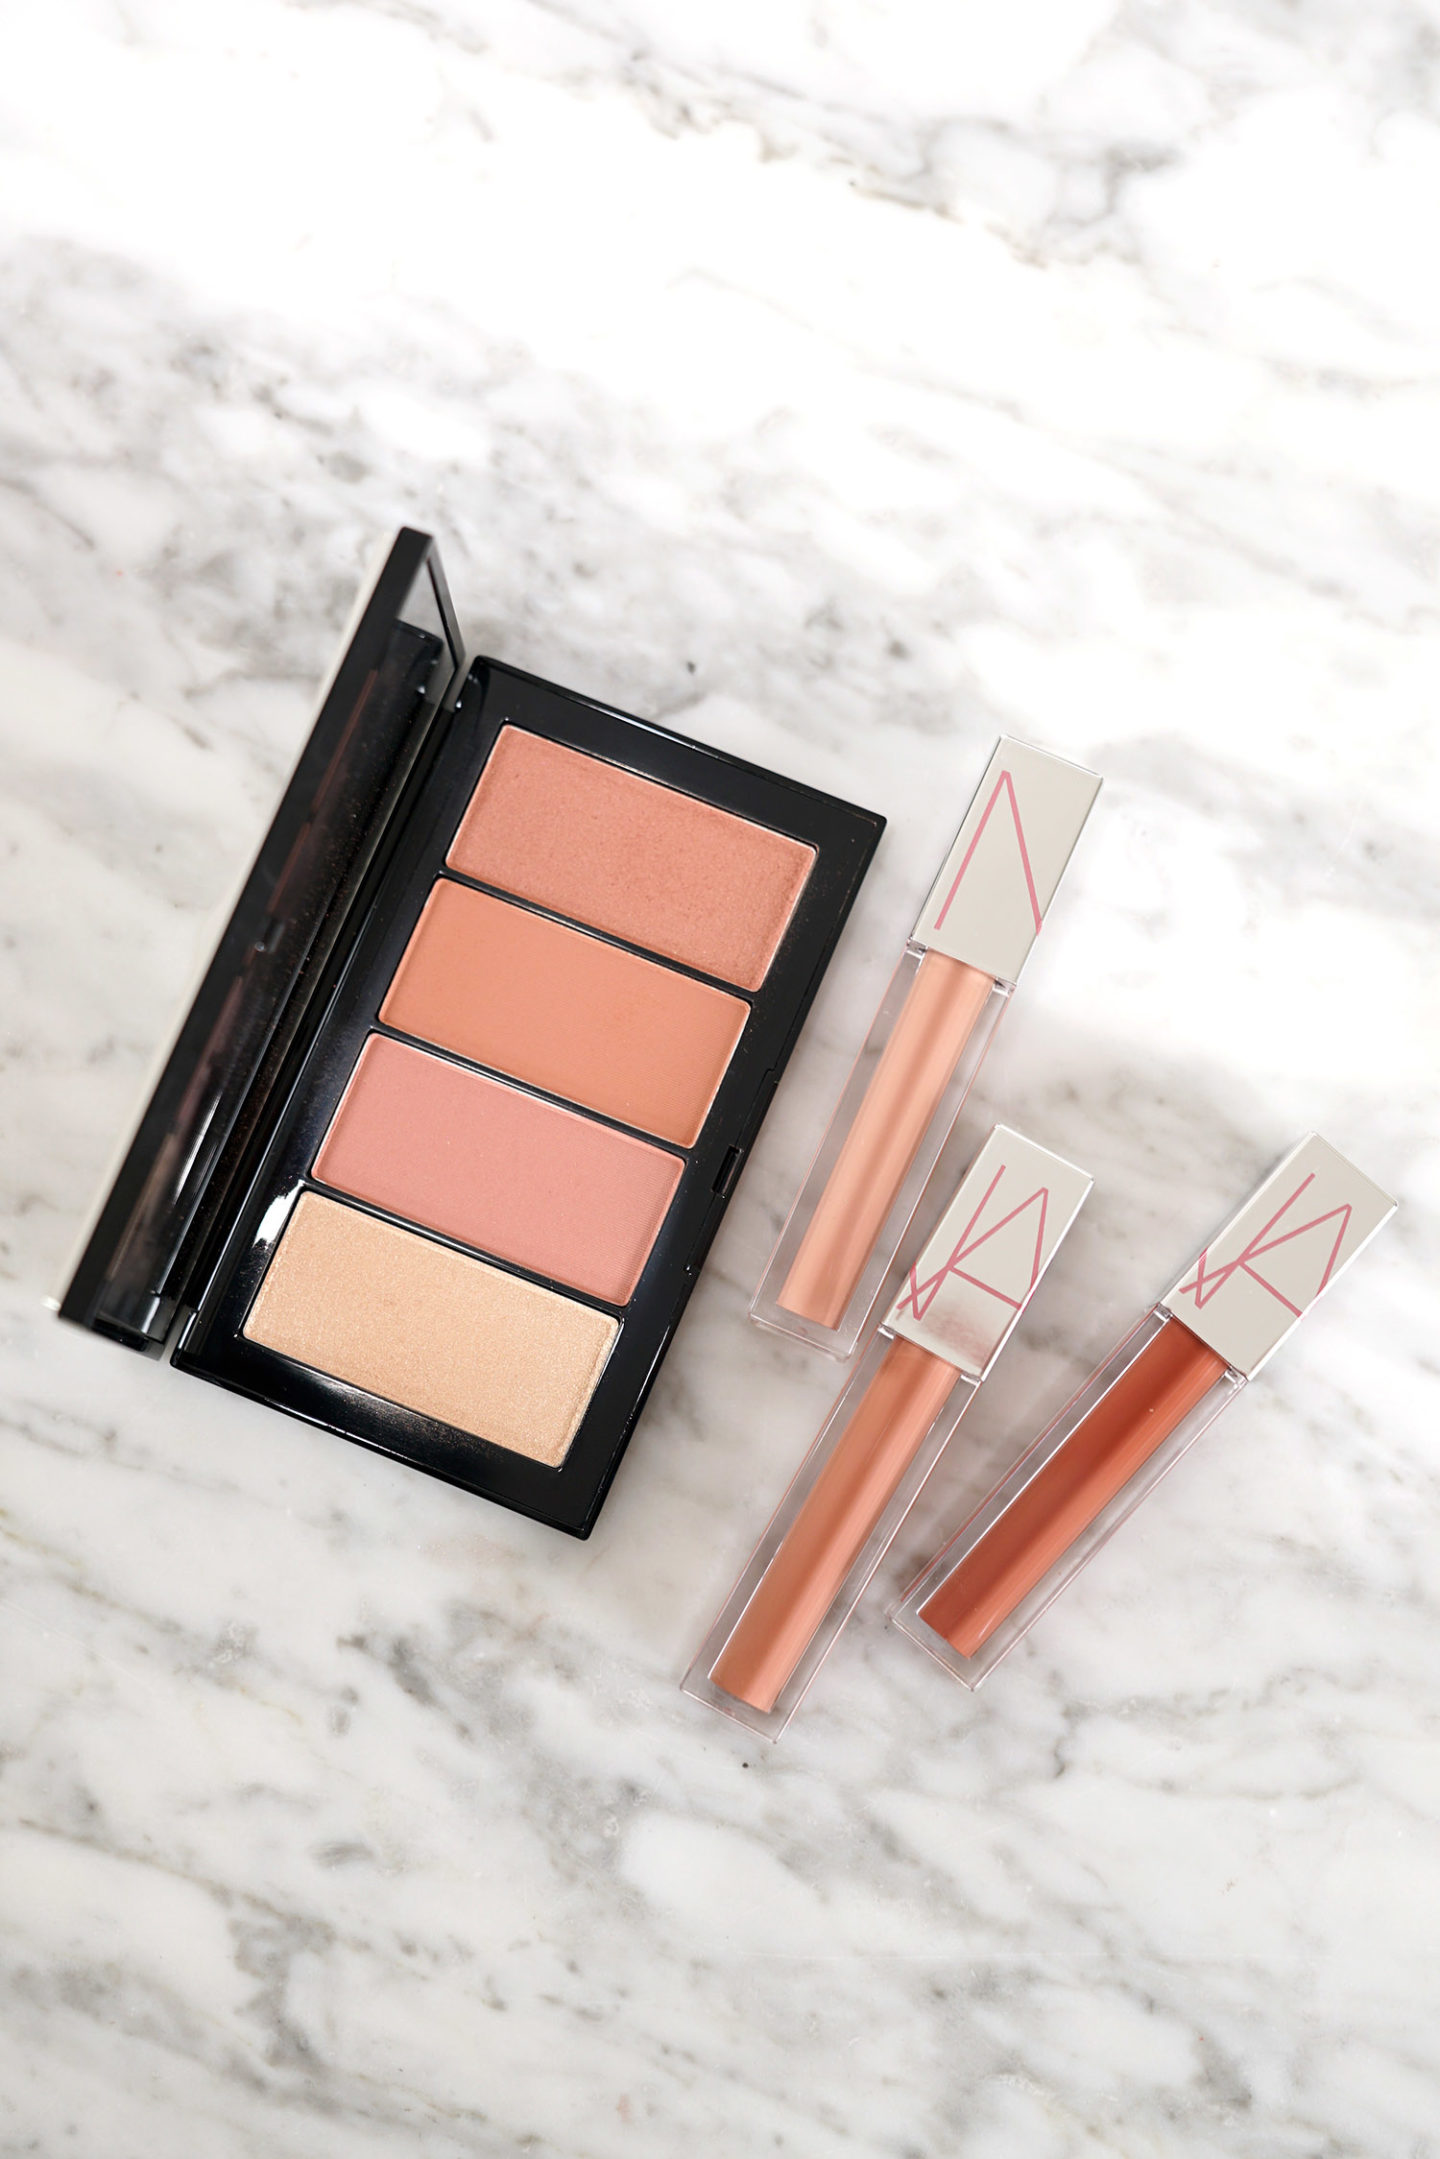 NARS x Nordstrom Cool Crush Collection